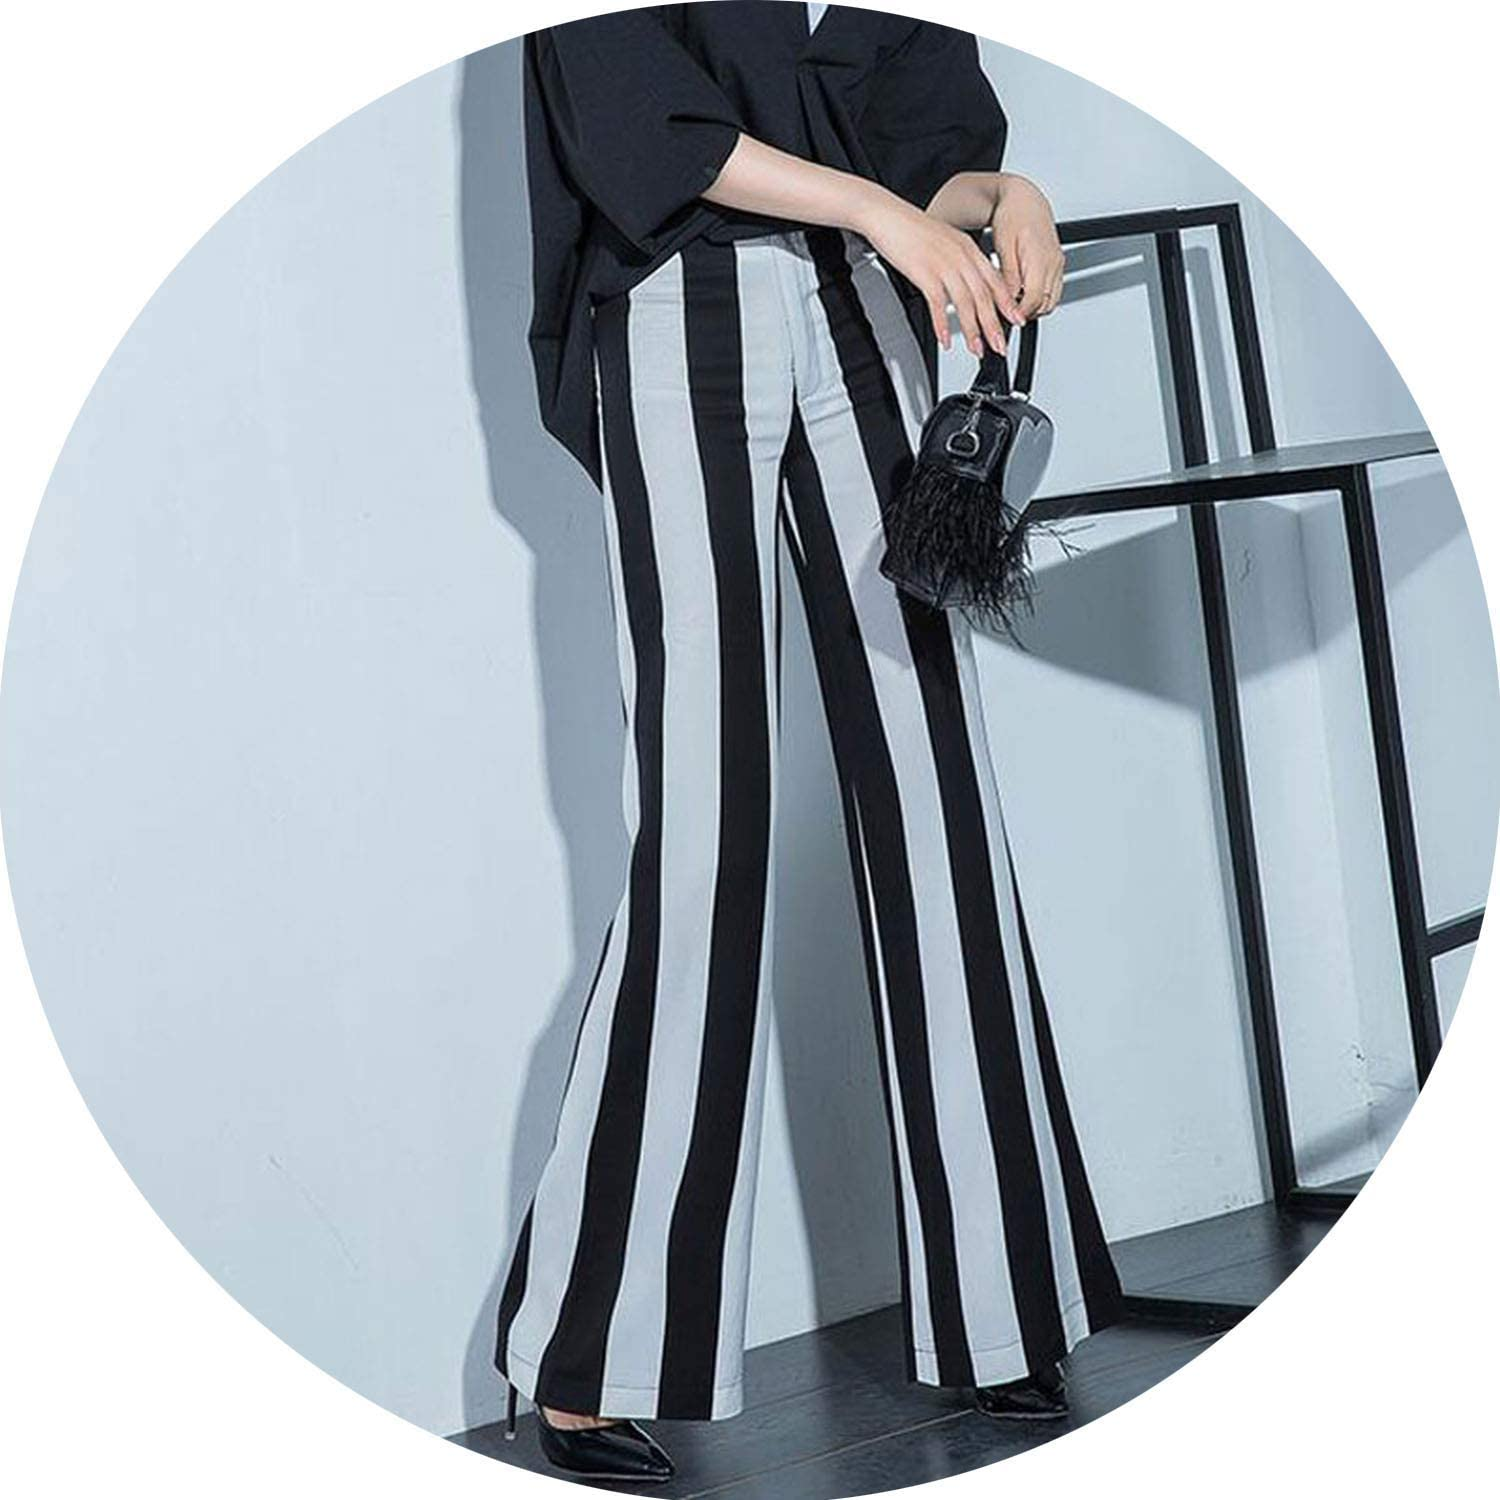 Can't be satisfied Summer Women's Cotton Flax Pants Loose Woman Casual Striped Linen Wide Leg Trousers